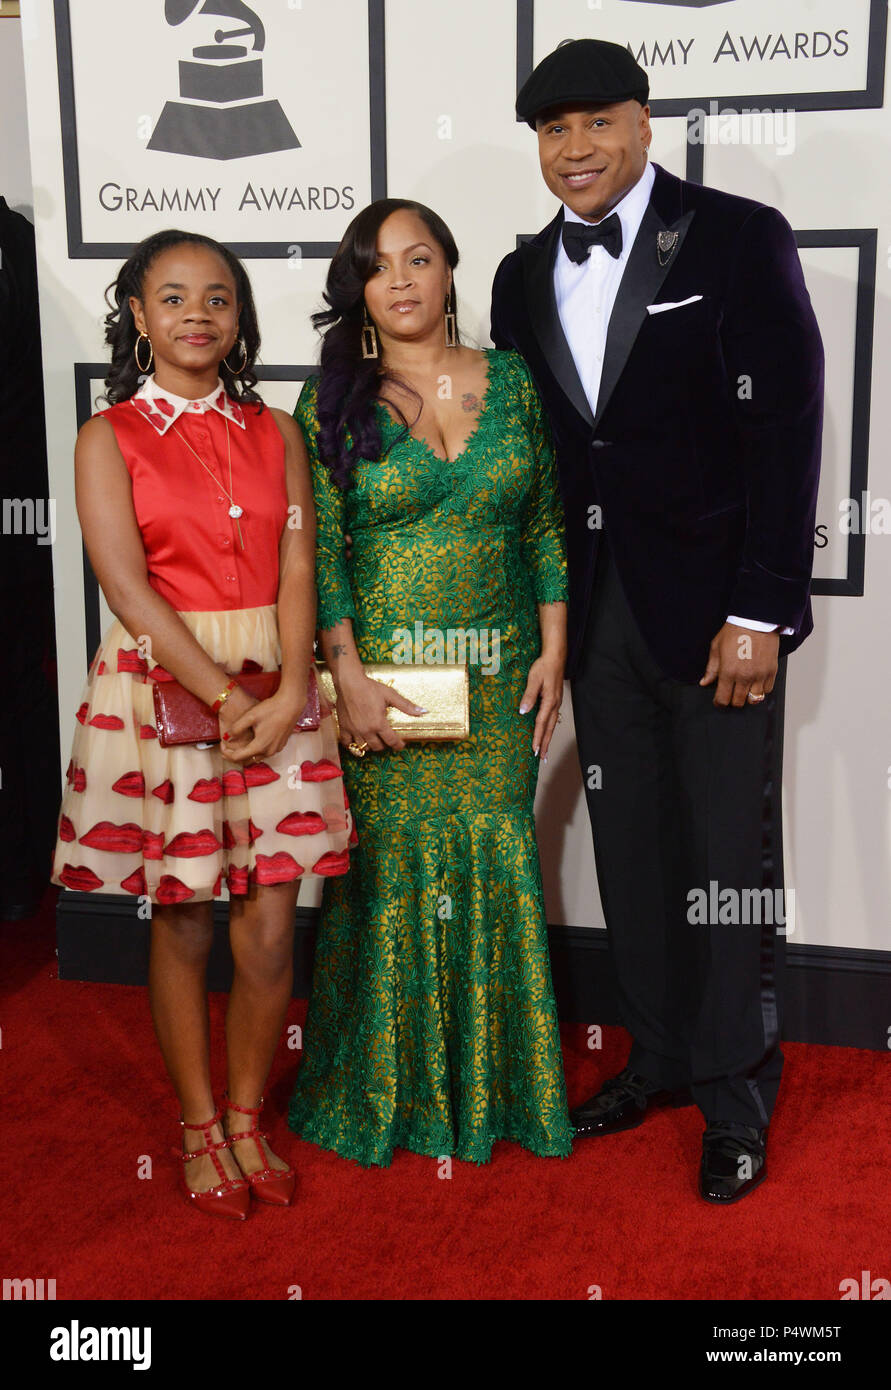 9fc037aea4f9a LL Cool J with wife and daughter arriving at the 56th Annual Grammy Awards  2014 at